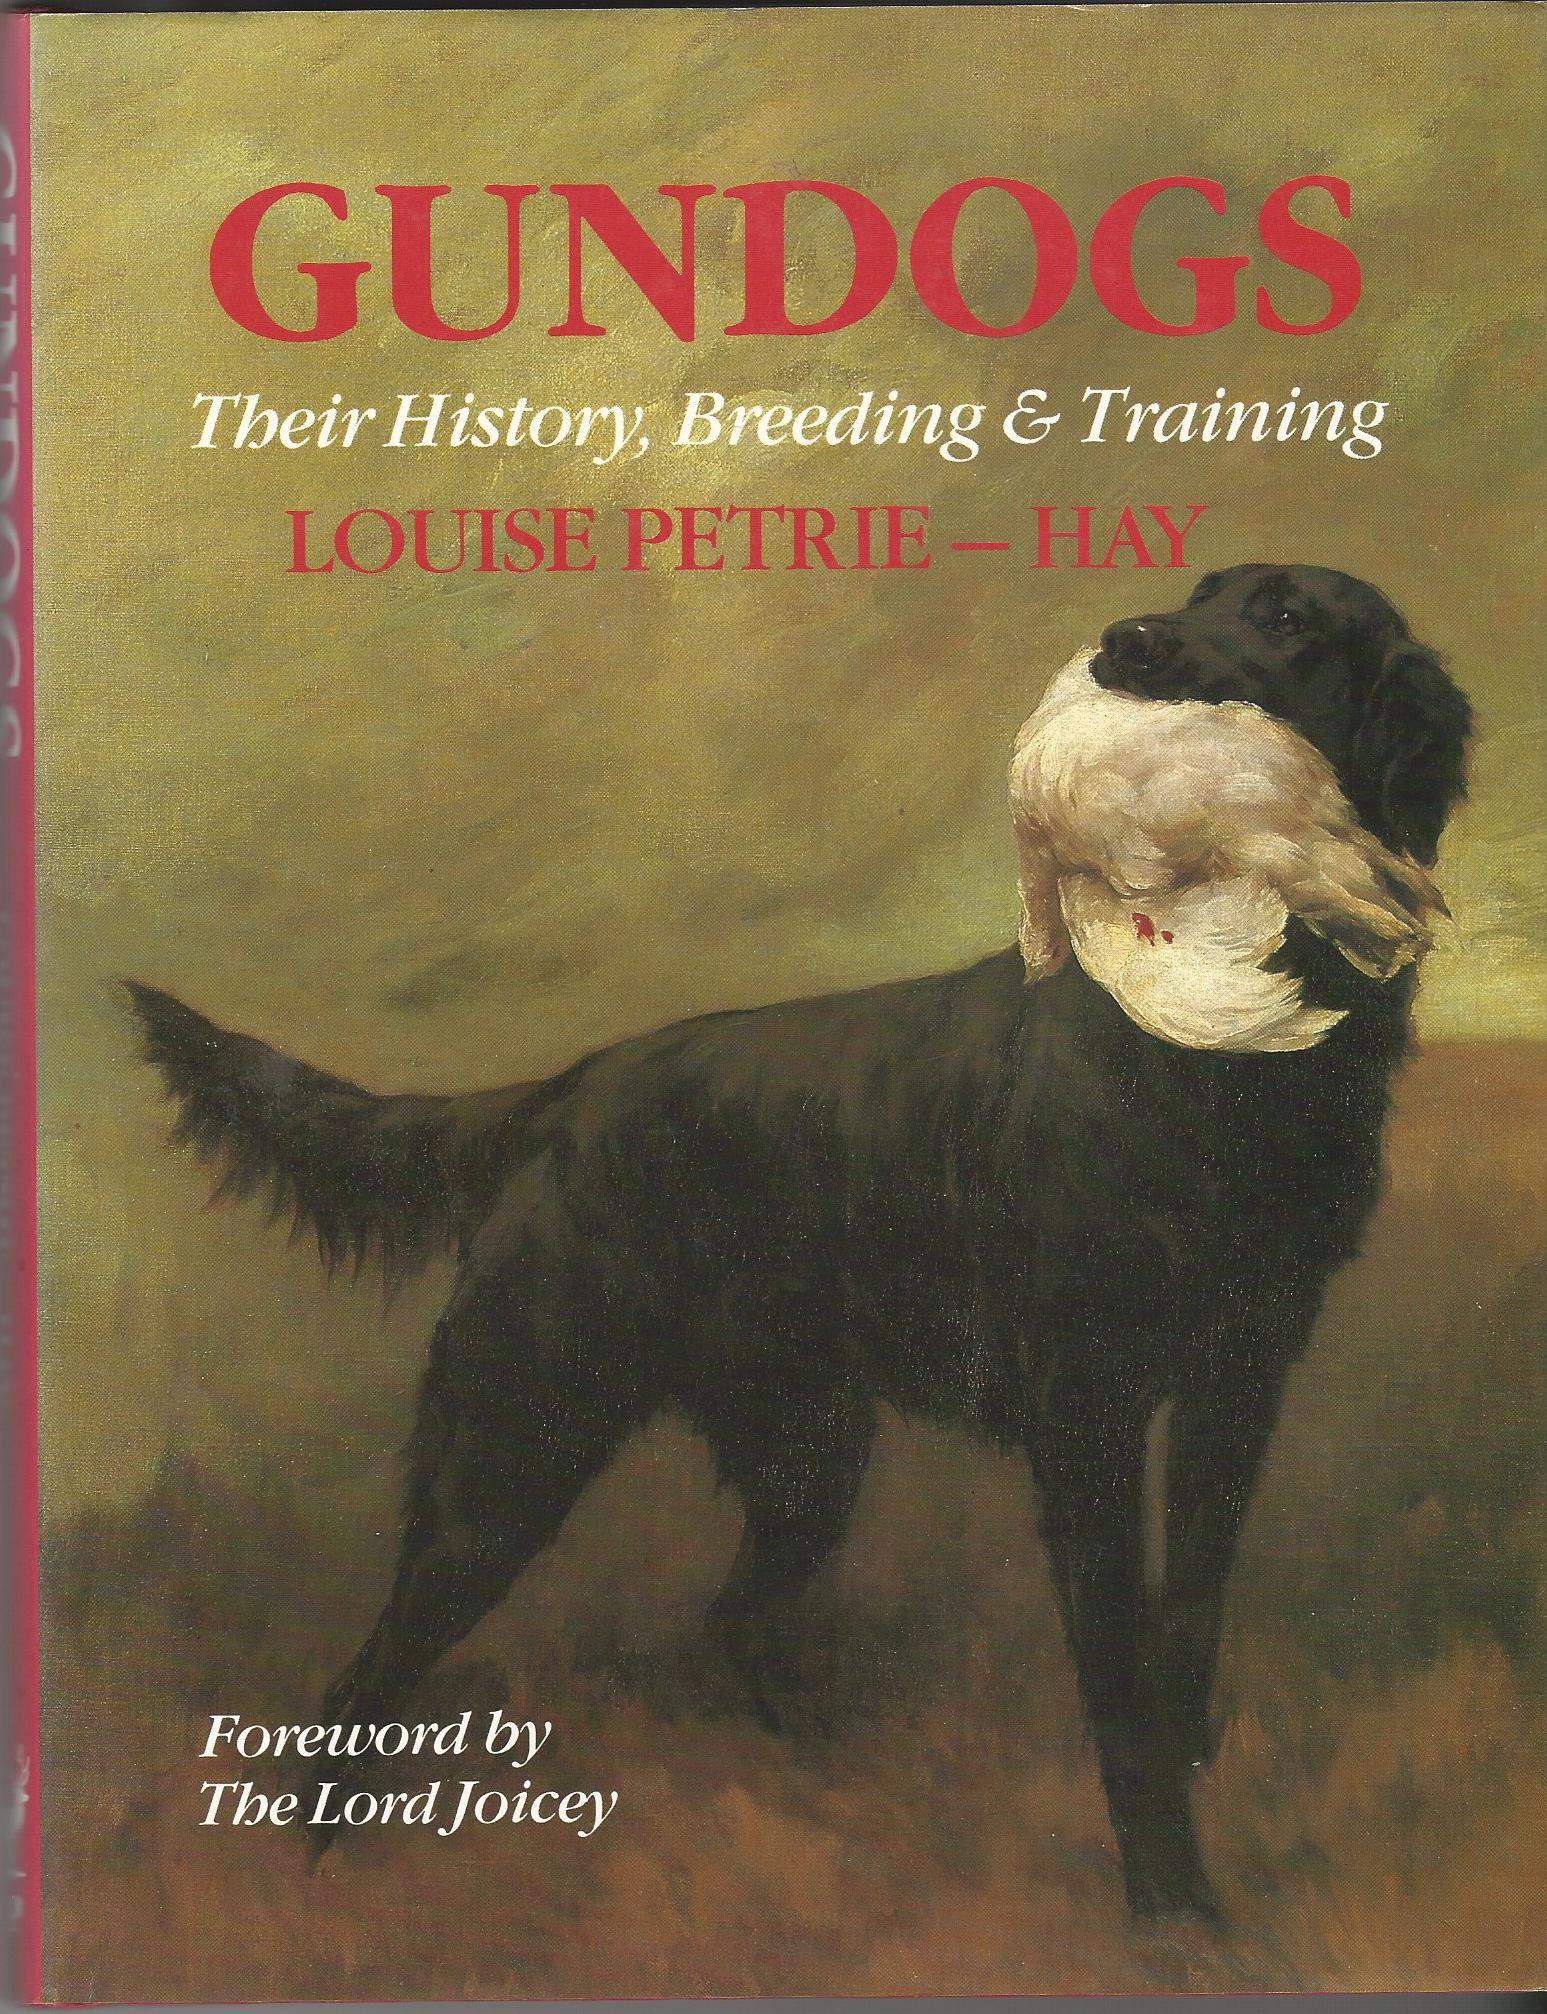 Image for Gun Dogs: Their History, Breeding & Training